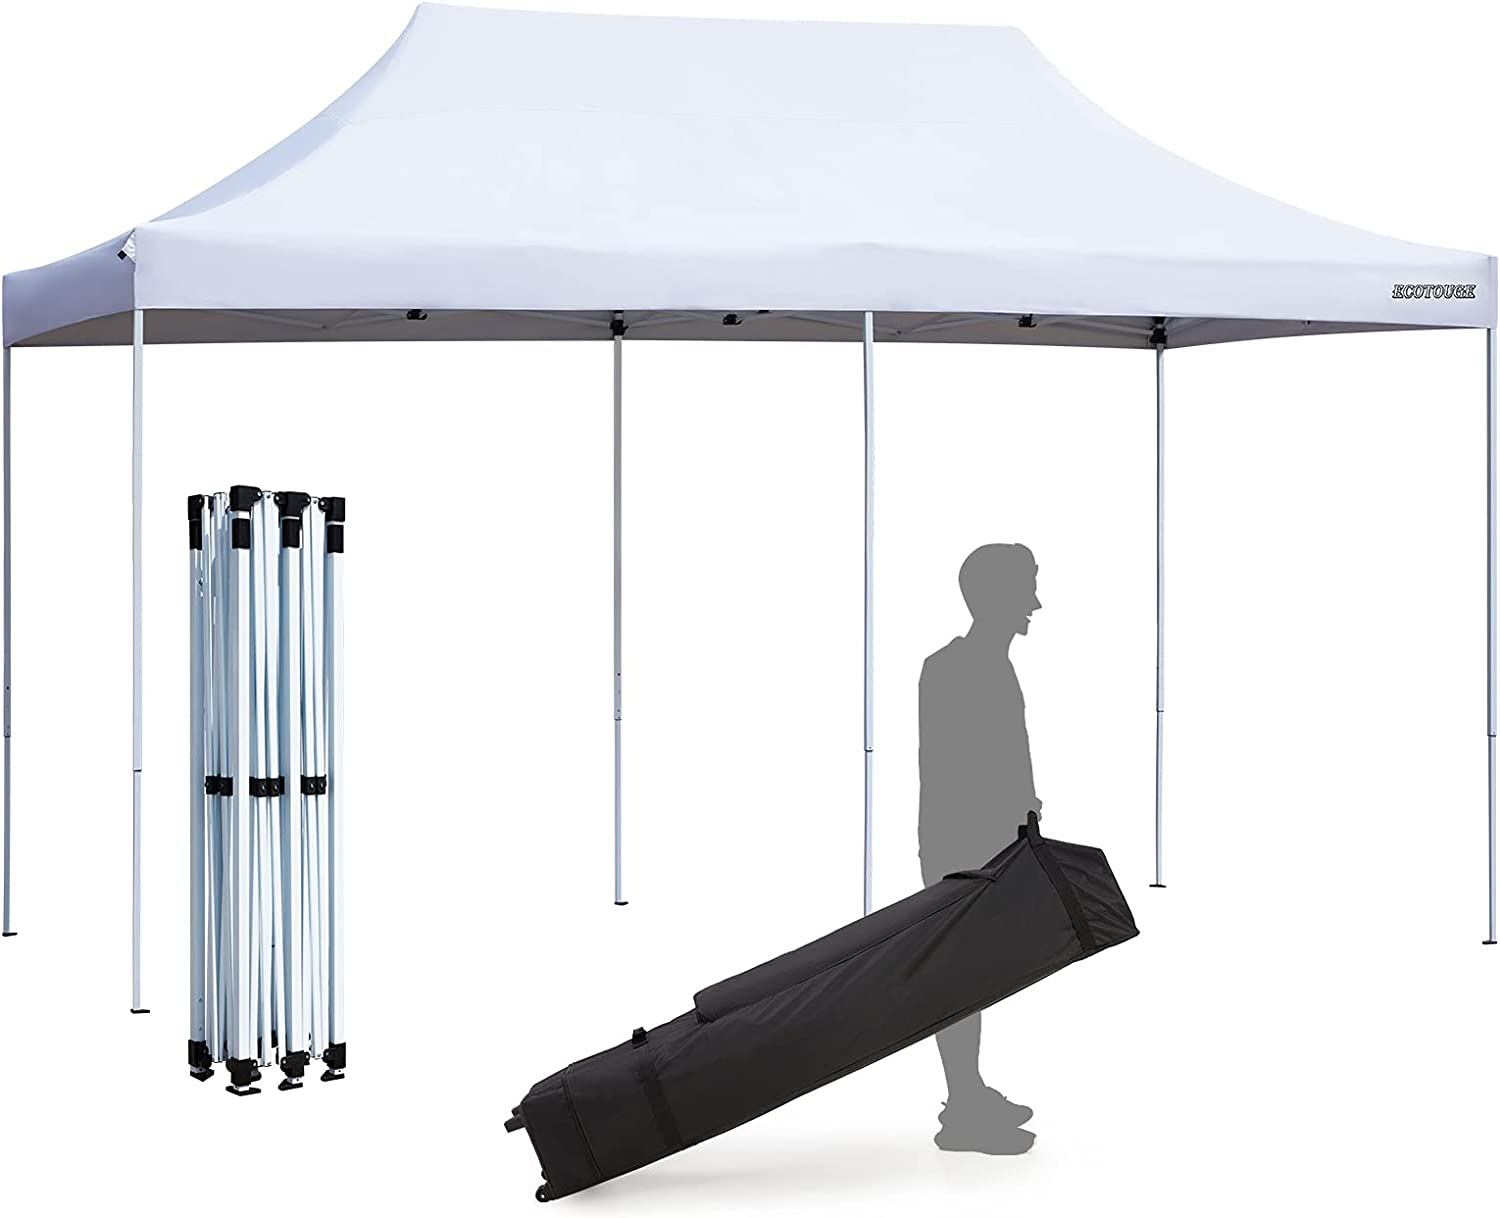 ECOTOUGE 10x20 Ft Popup Canopy Outlet SALE Tent Wedding Party Gazebo Minneapolis Mall Shelter